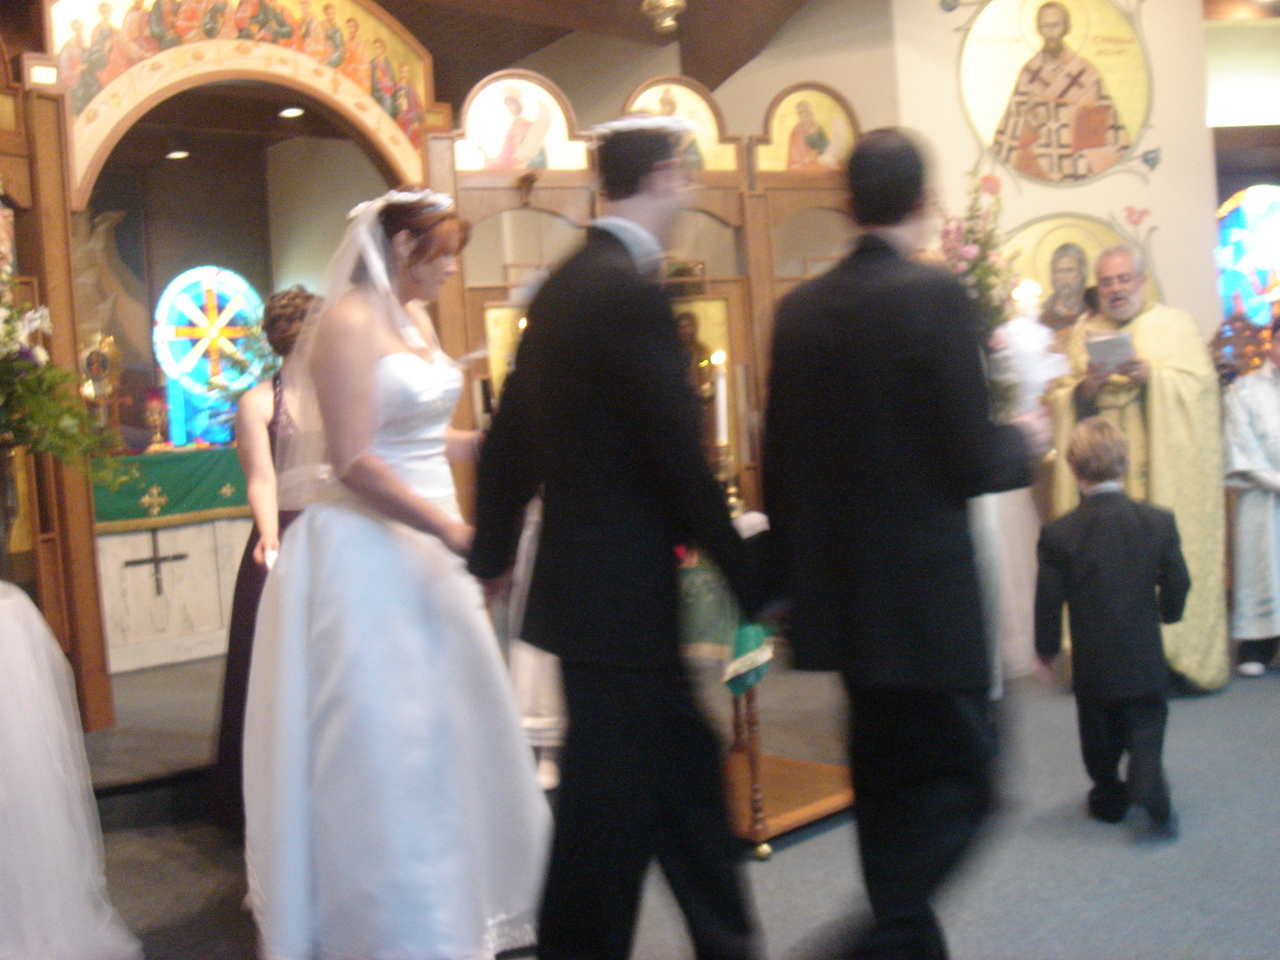 walking around the altar to signify they are ONE